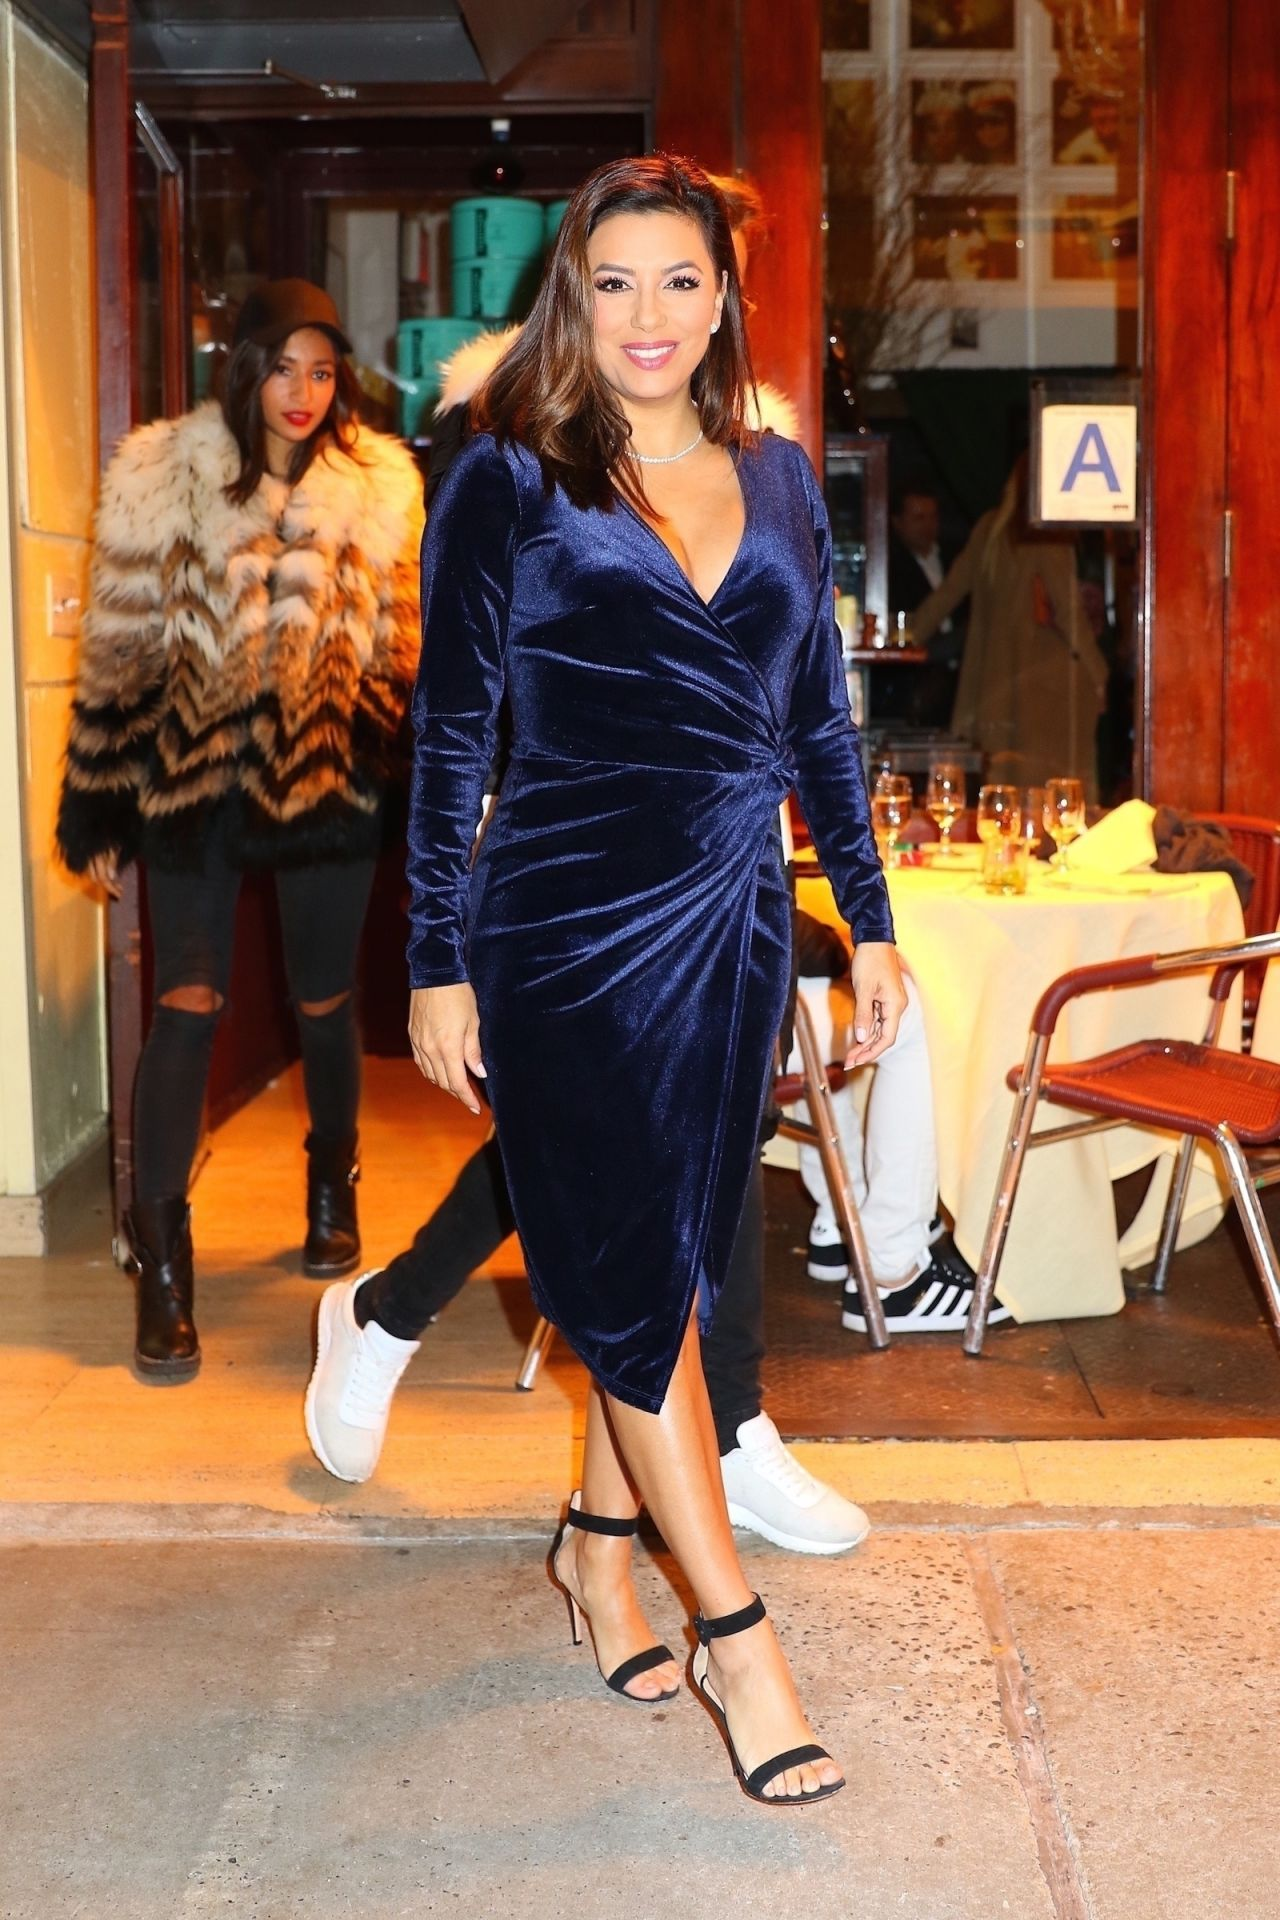 http://celebmafia.com/wp-content/uploads/2017/11/eva-longoria-shows-off-her-eclectic-style-cipriani-restaurant-in-ny-11-21-2017-0.jpg